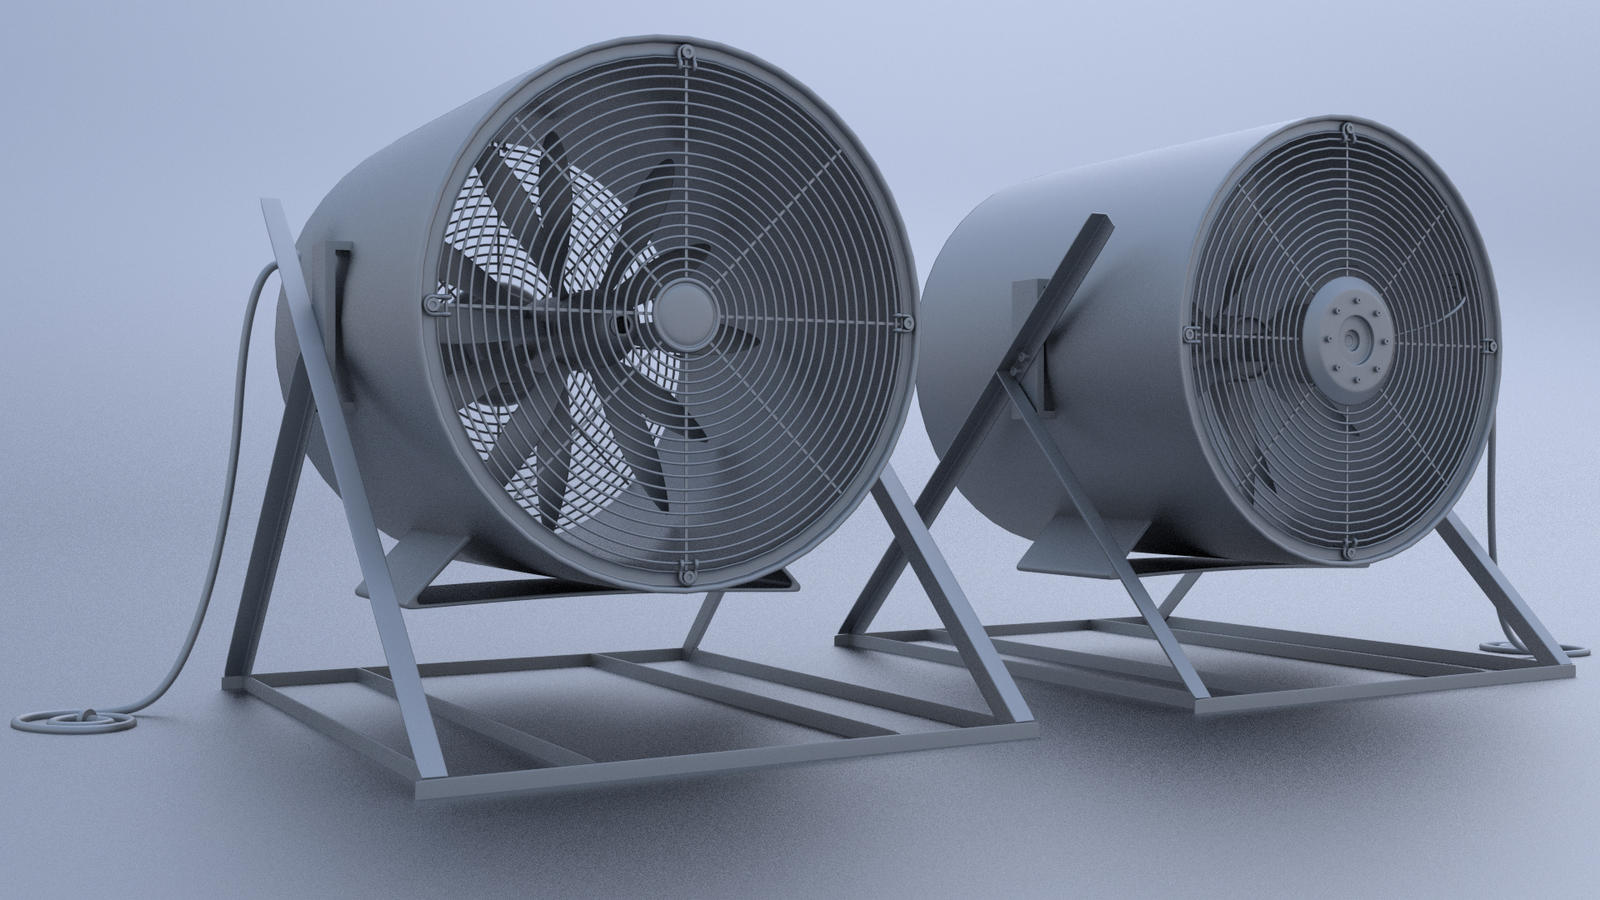 Industrial Fan By Regusmartin On Deviantart